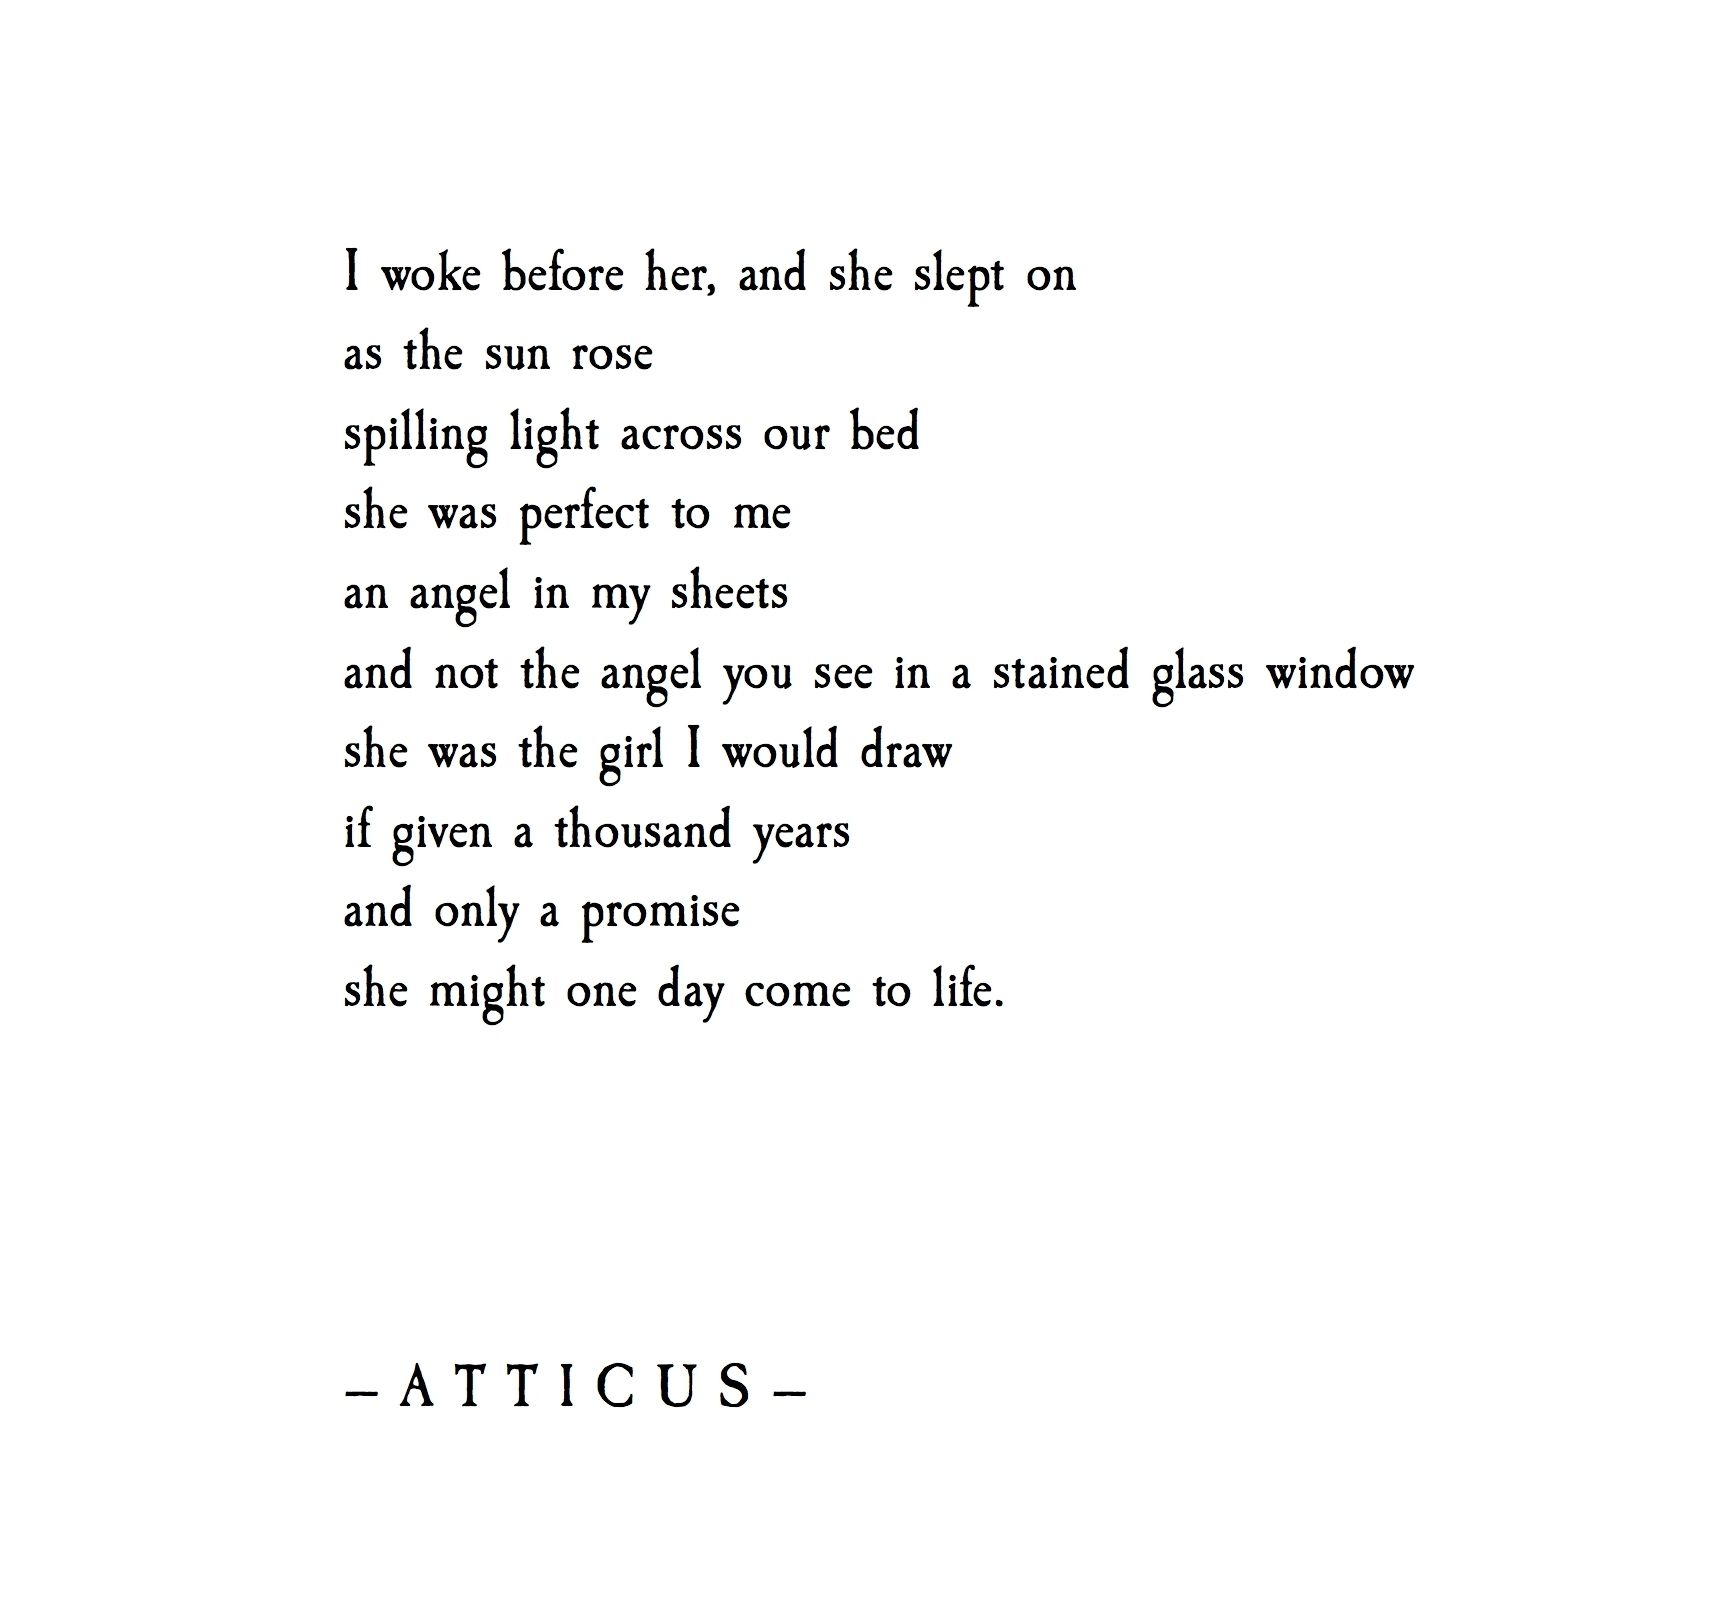 Poems And Quotes About Life Come To Life' Atticuspoetry Atticus Poetry Poem Loveherwild